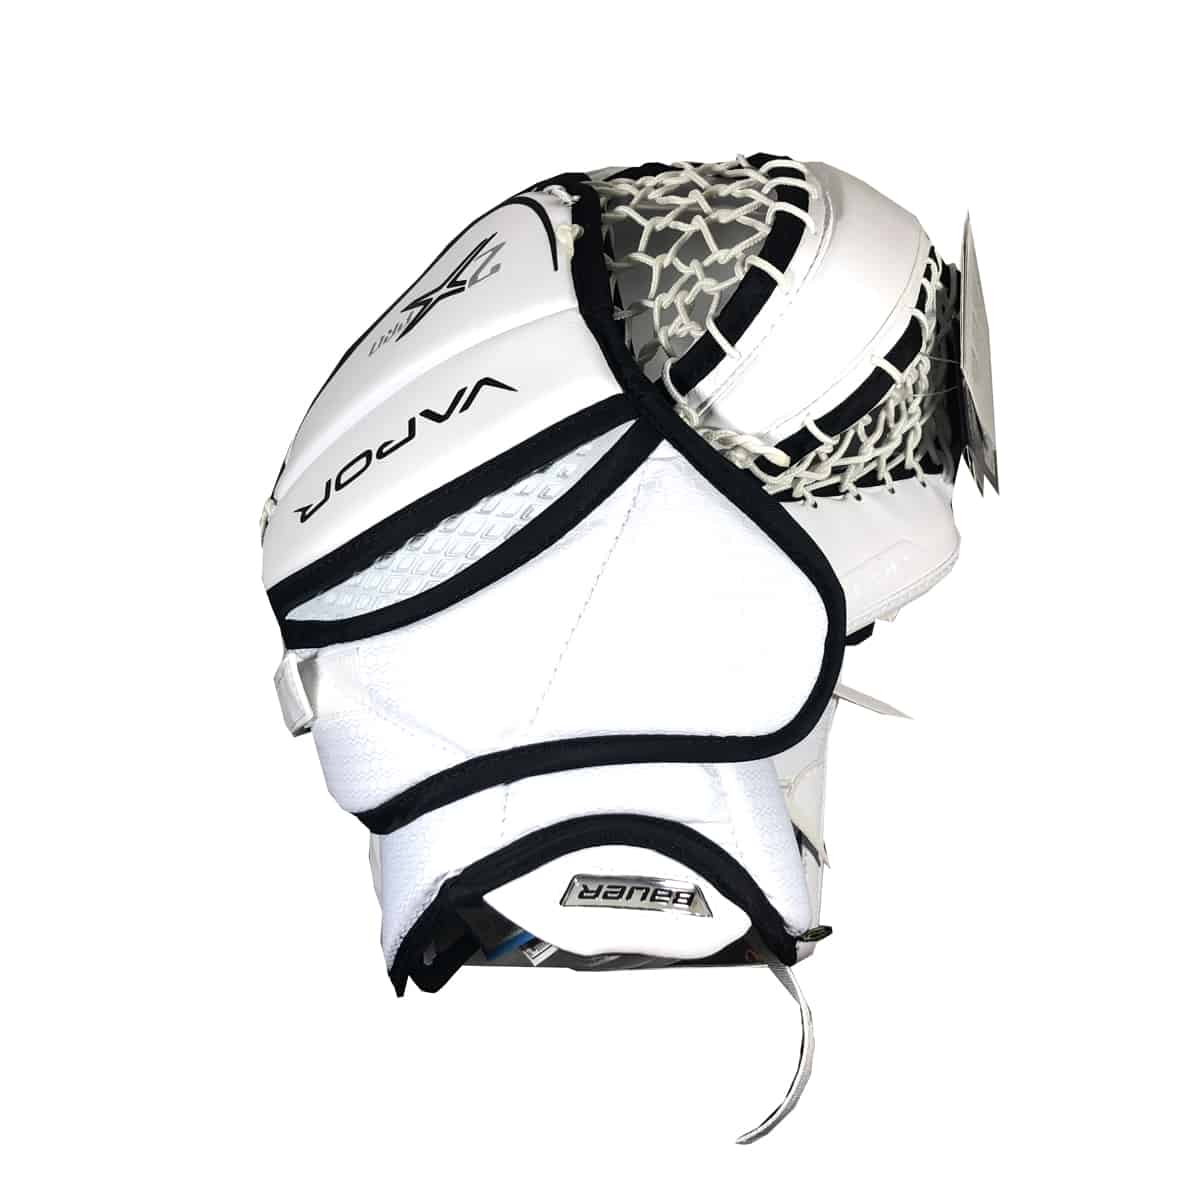 Bauer Vapor 2X Pro Senior Goalie Catch Glove